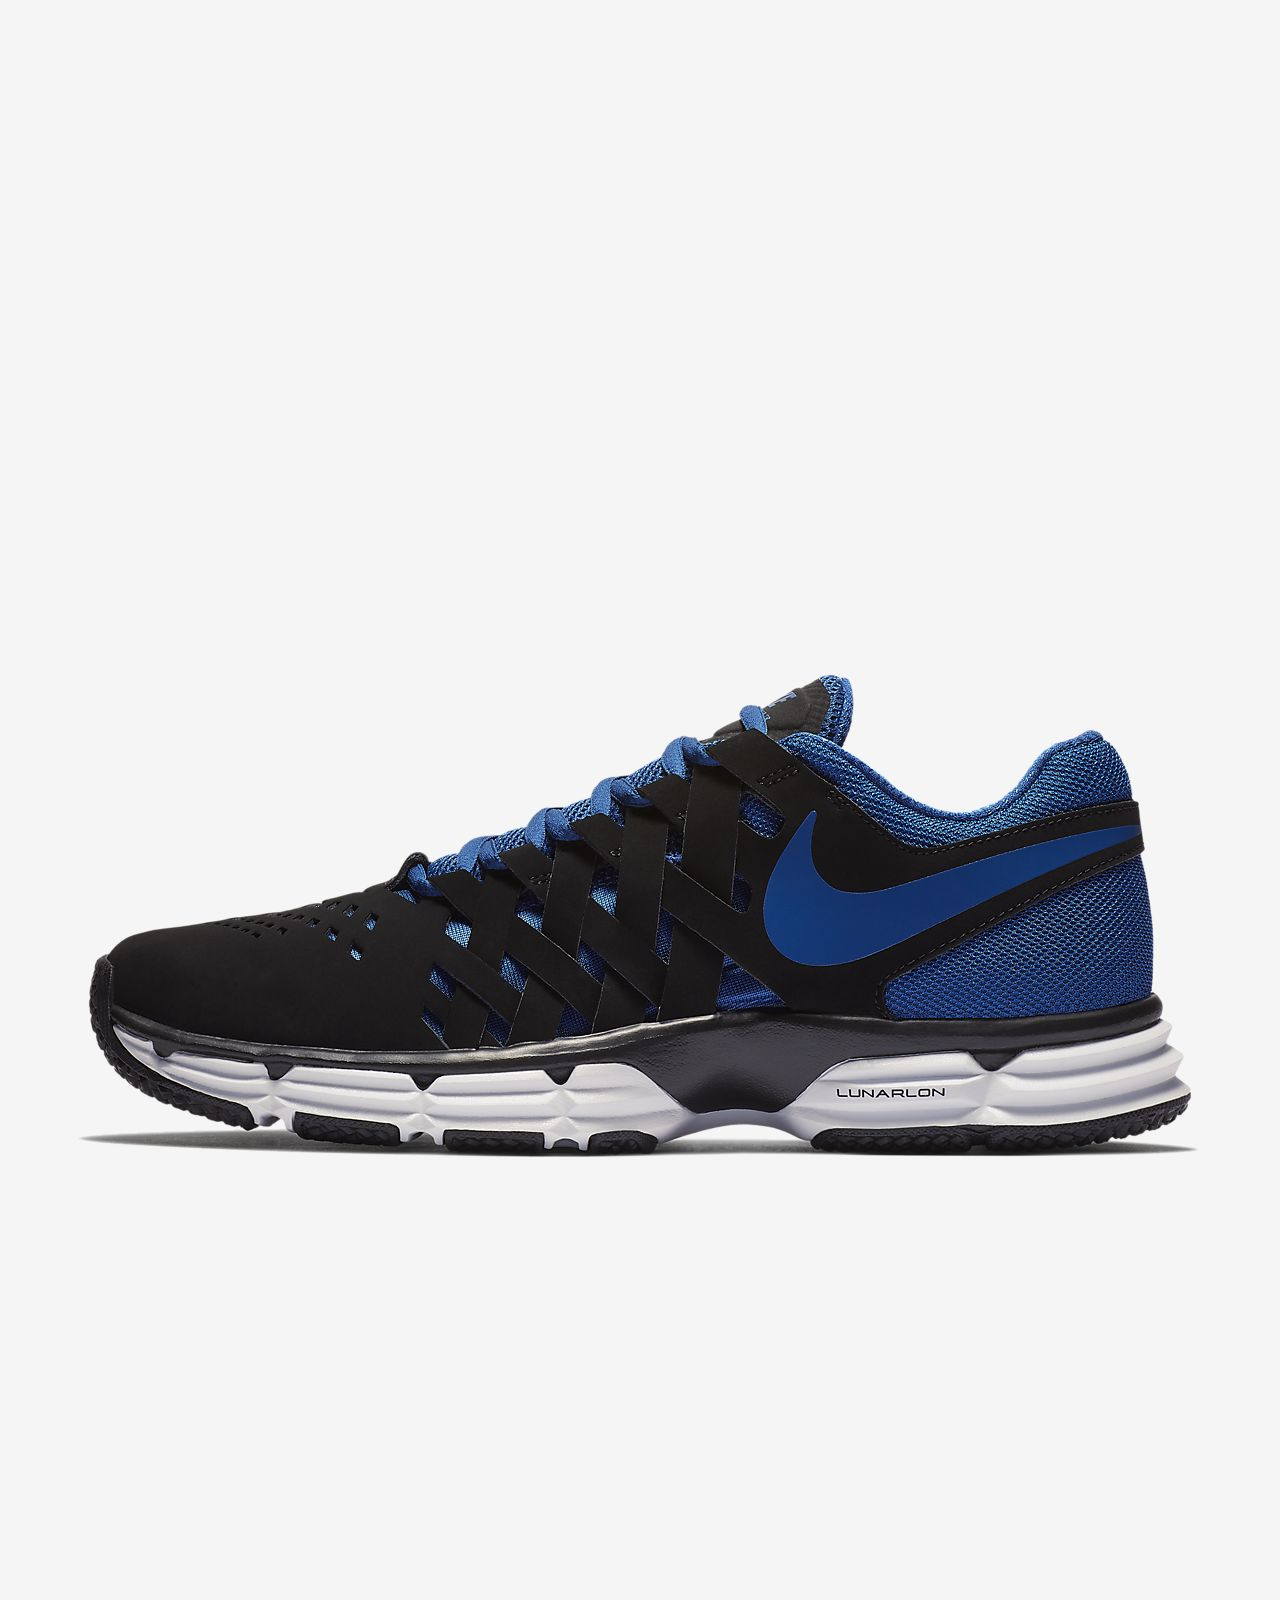 ... Nike Lunar Fingertrap TR Men's Training Shoe